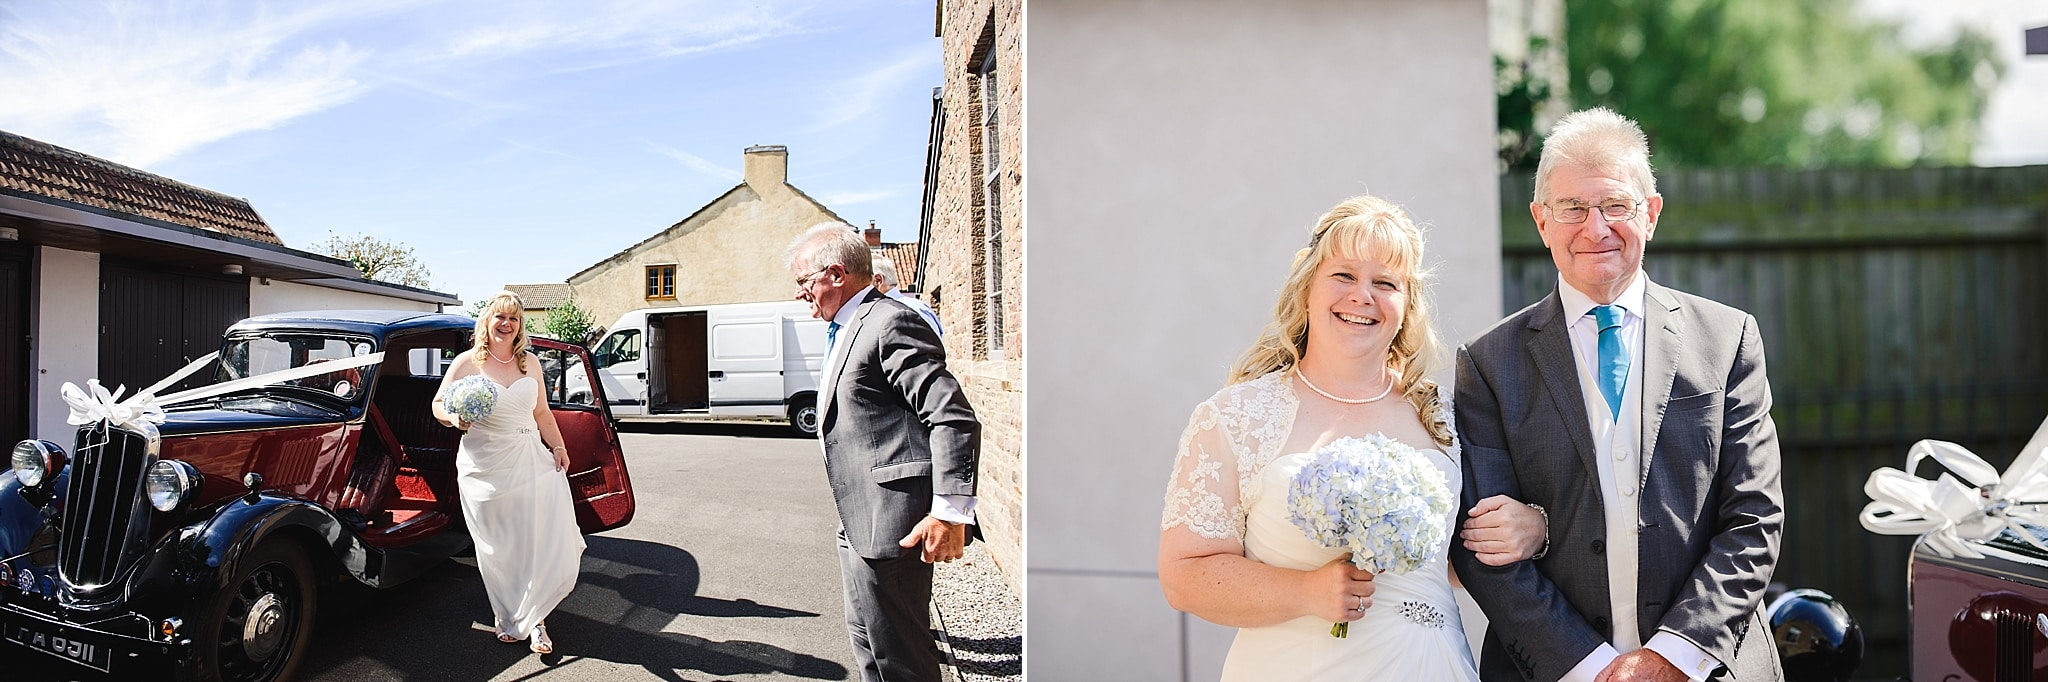 Bride arriving in wedding car and then posing for a photo with her father outside Nailsea Tithe barn